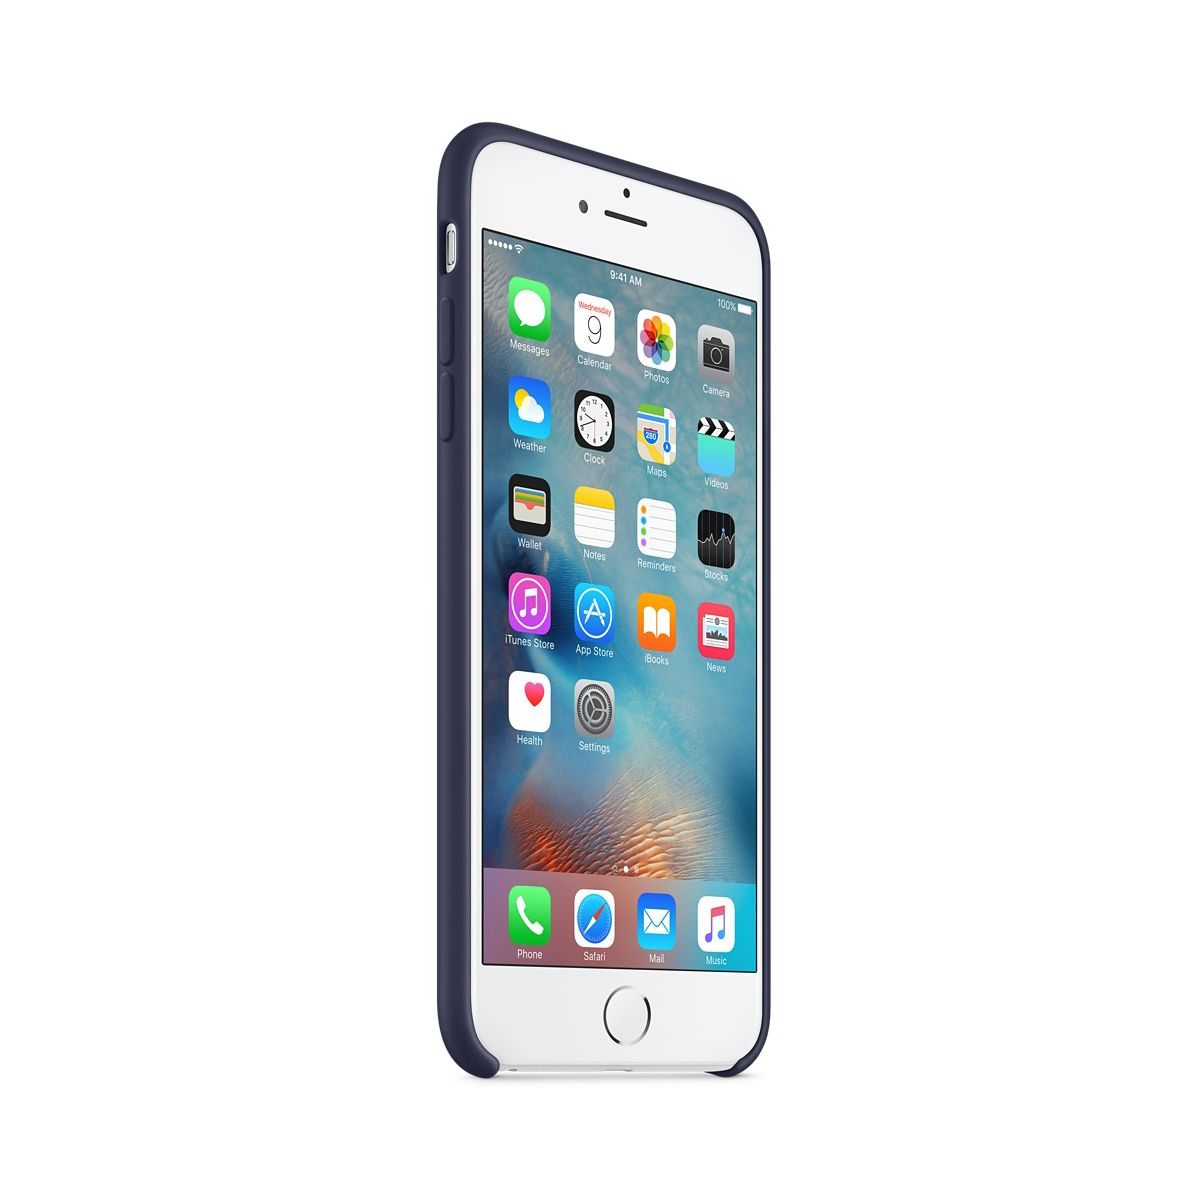 Coque apple iphone 6s plus bleu nuit (photo)